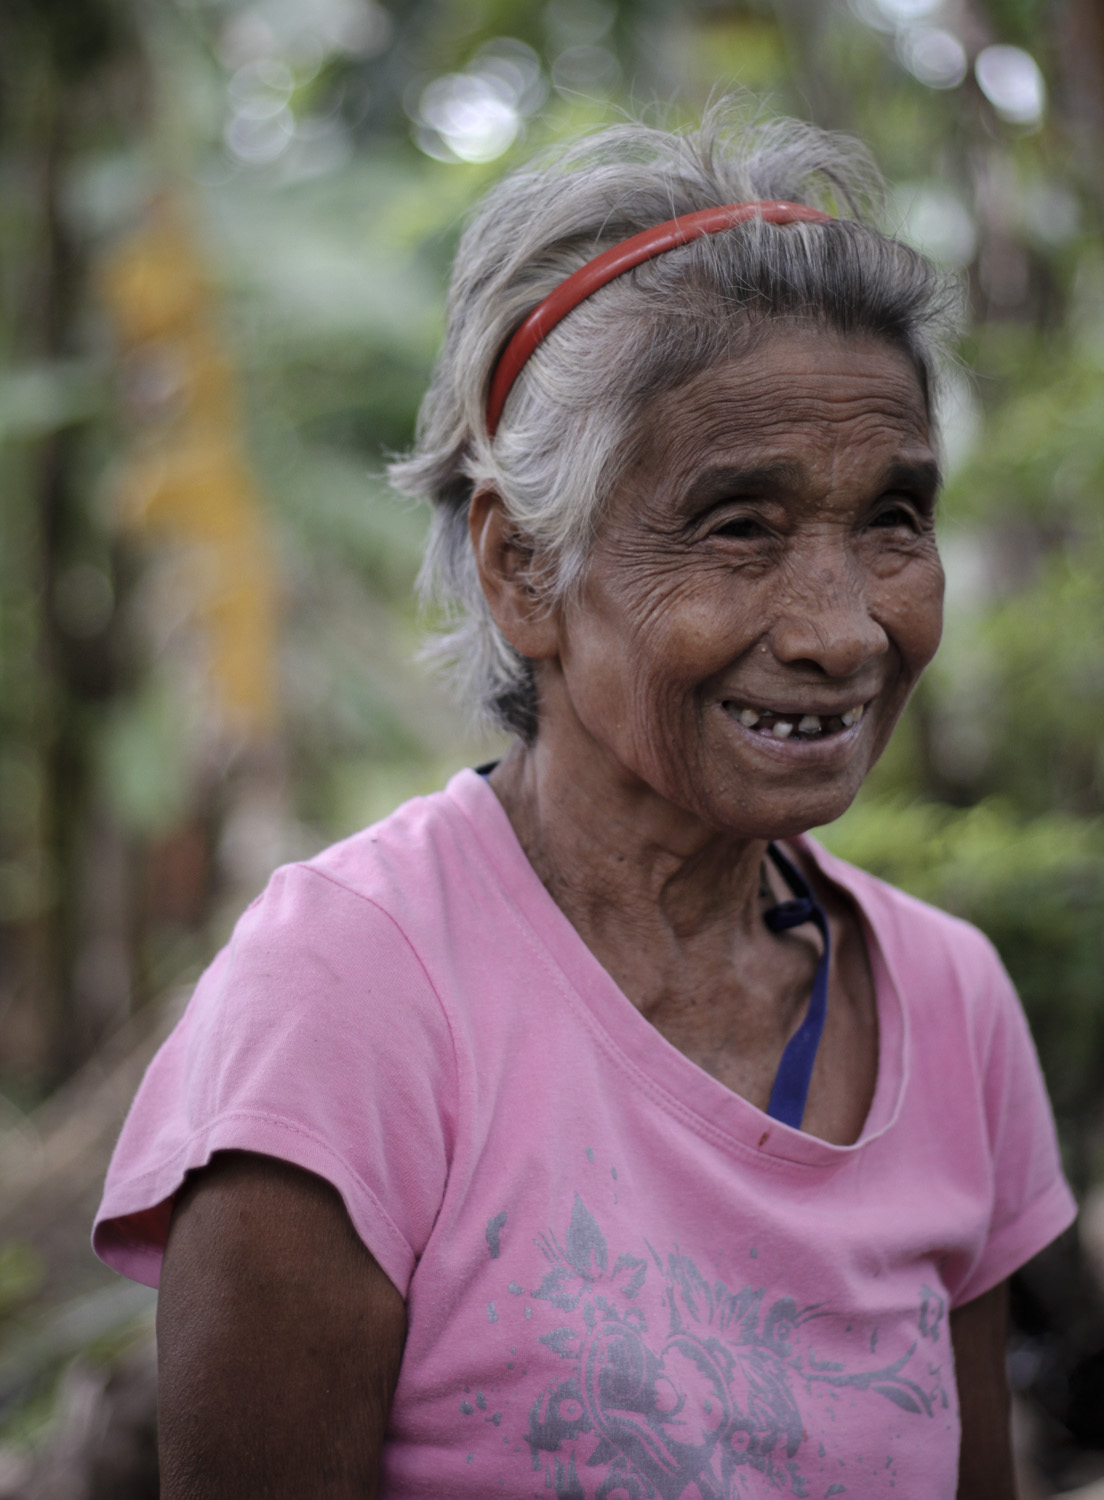 Residents of Sitio Dalid rely on agriculture for their livelihood.